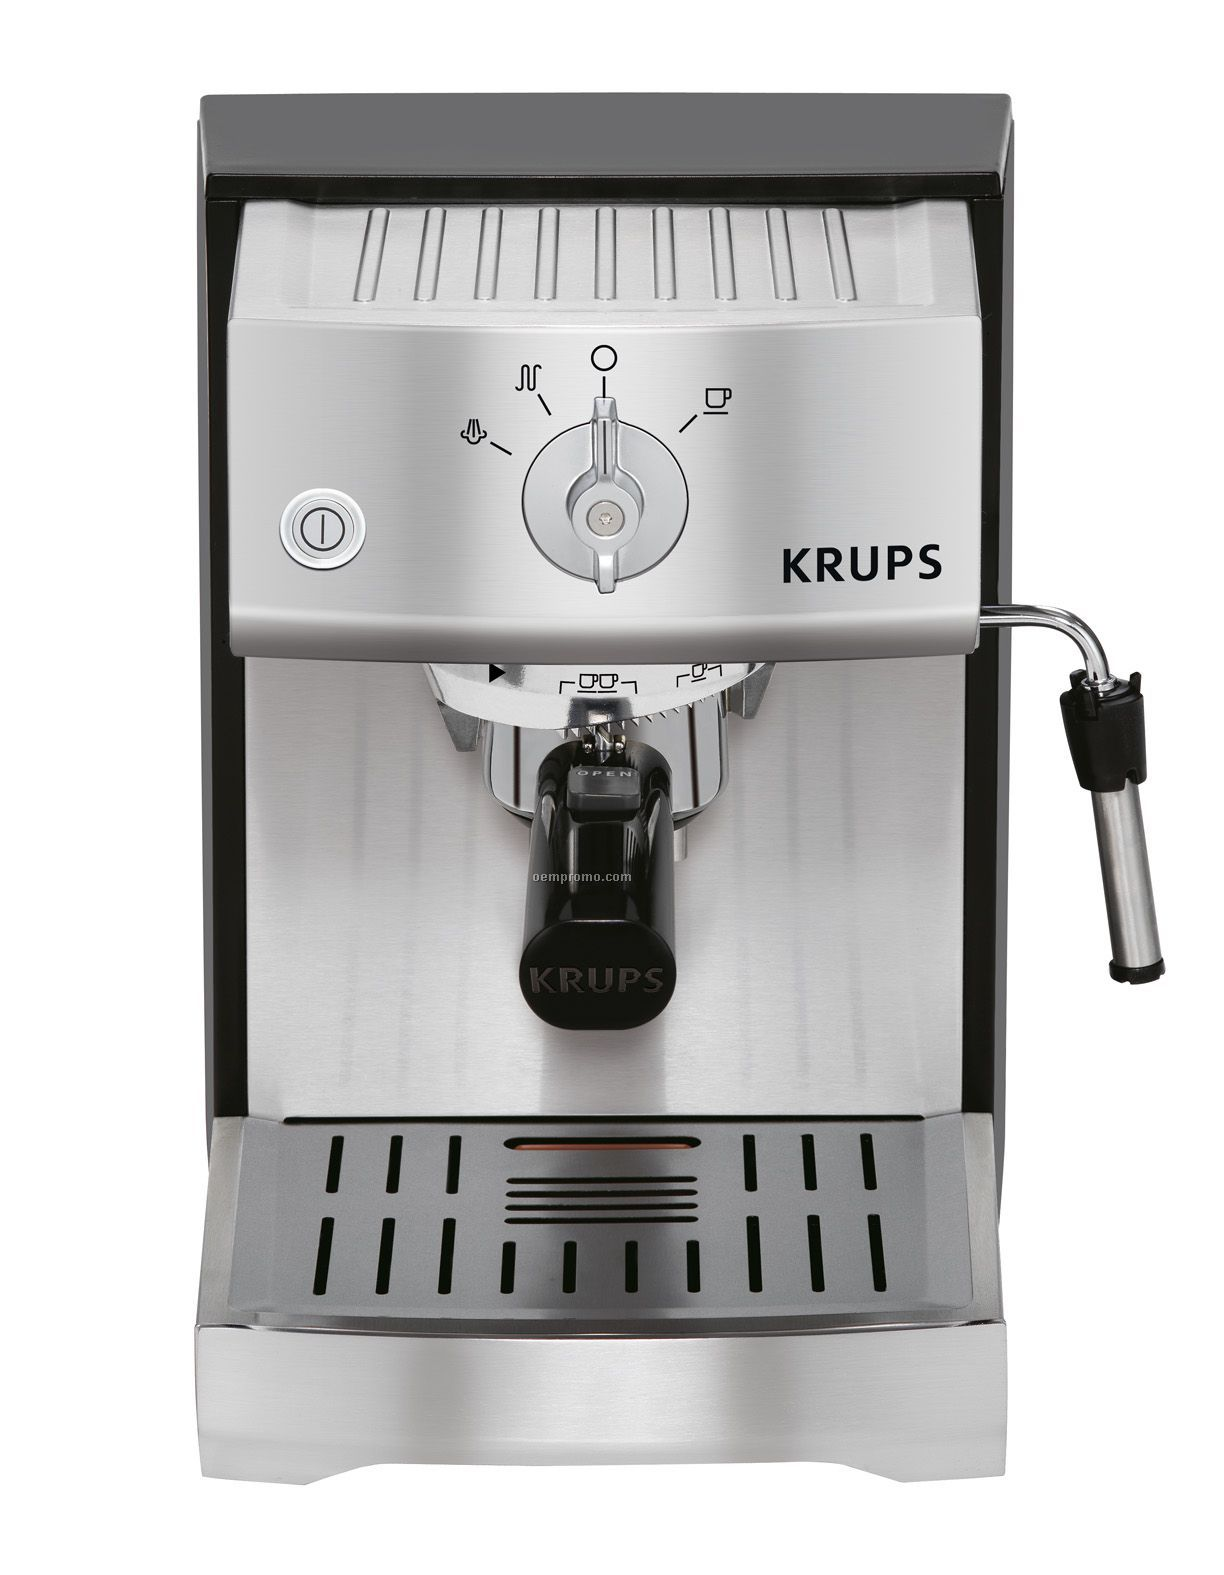 Krups Pump Espresso Machine With Precise Tamp